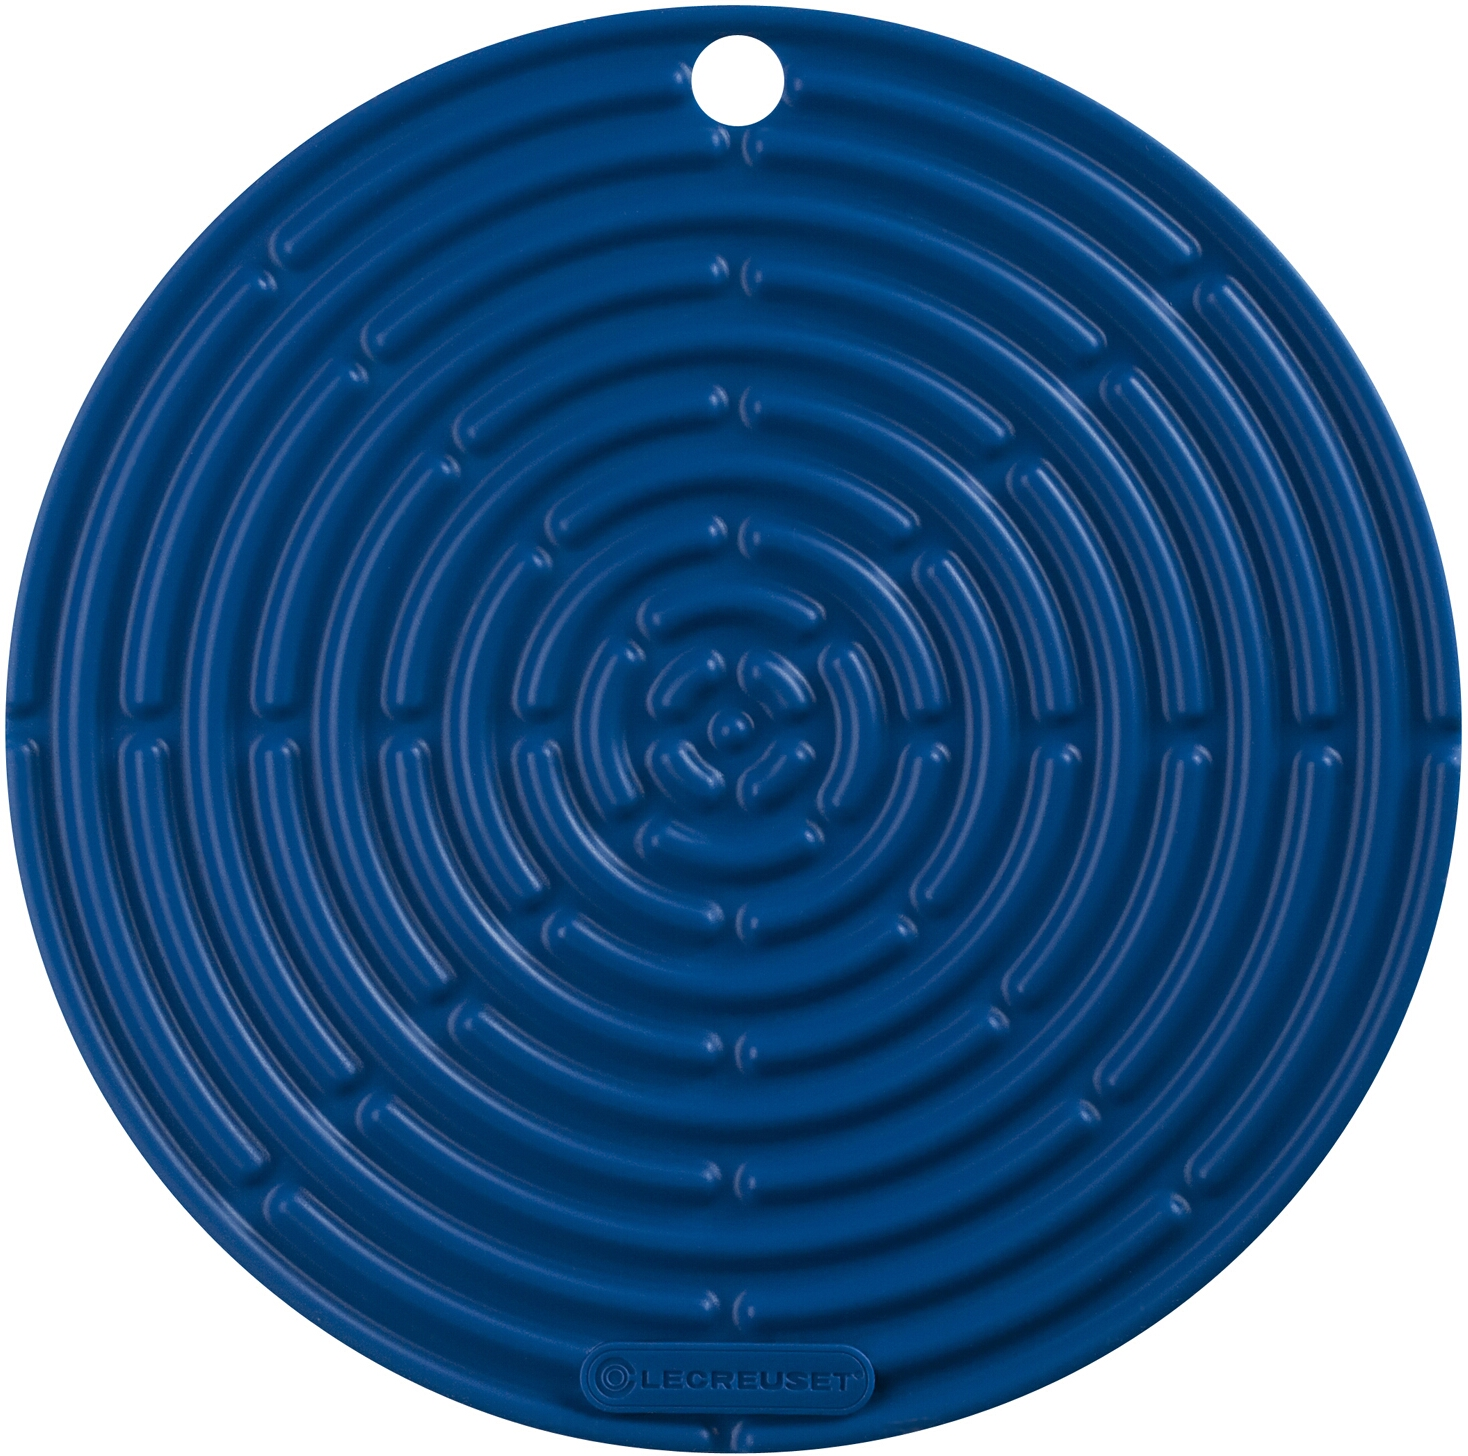 Le Creuset Marseille Blue Silicone Cool Tool Hot Pad